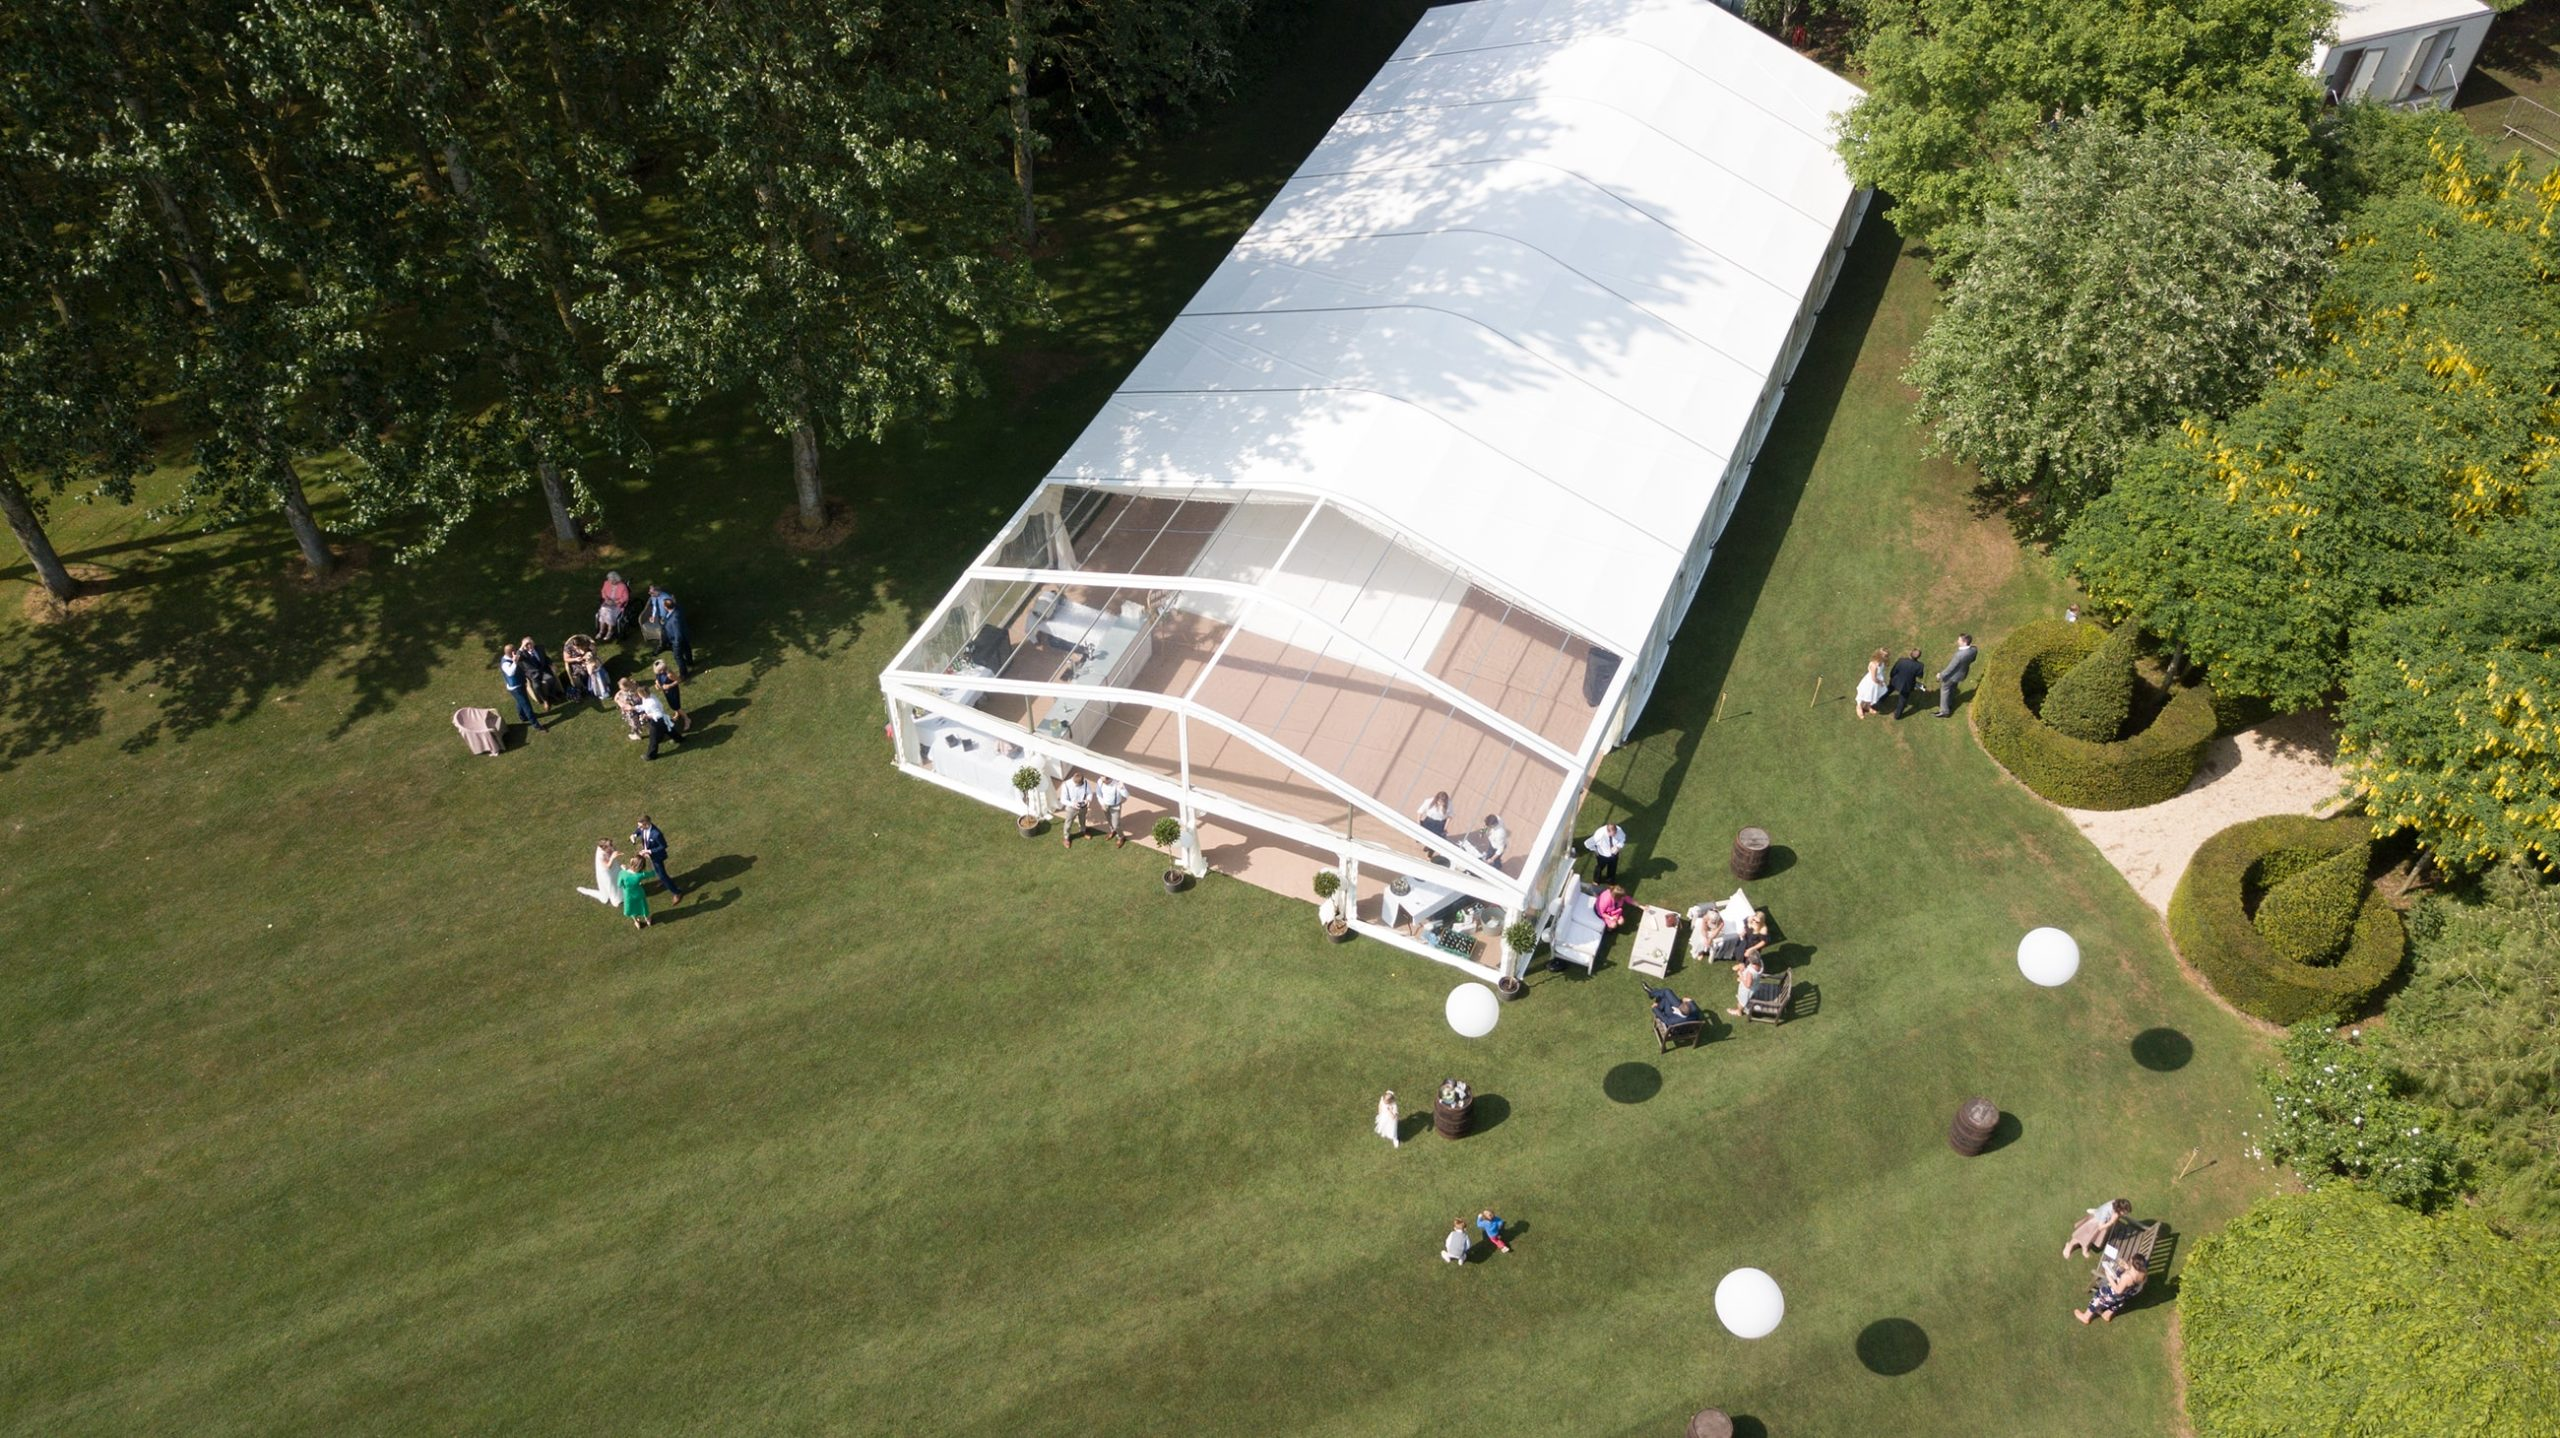 How much does it cost to hire a marquee?